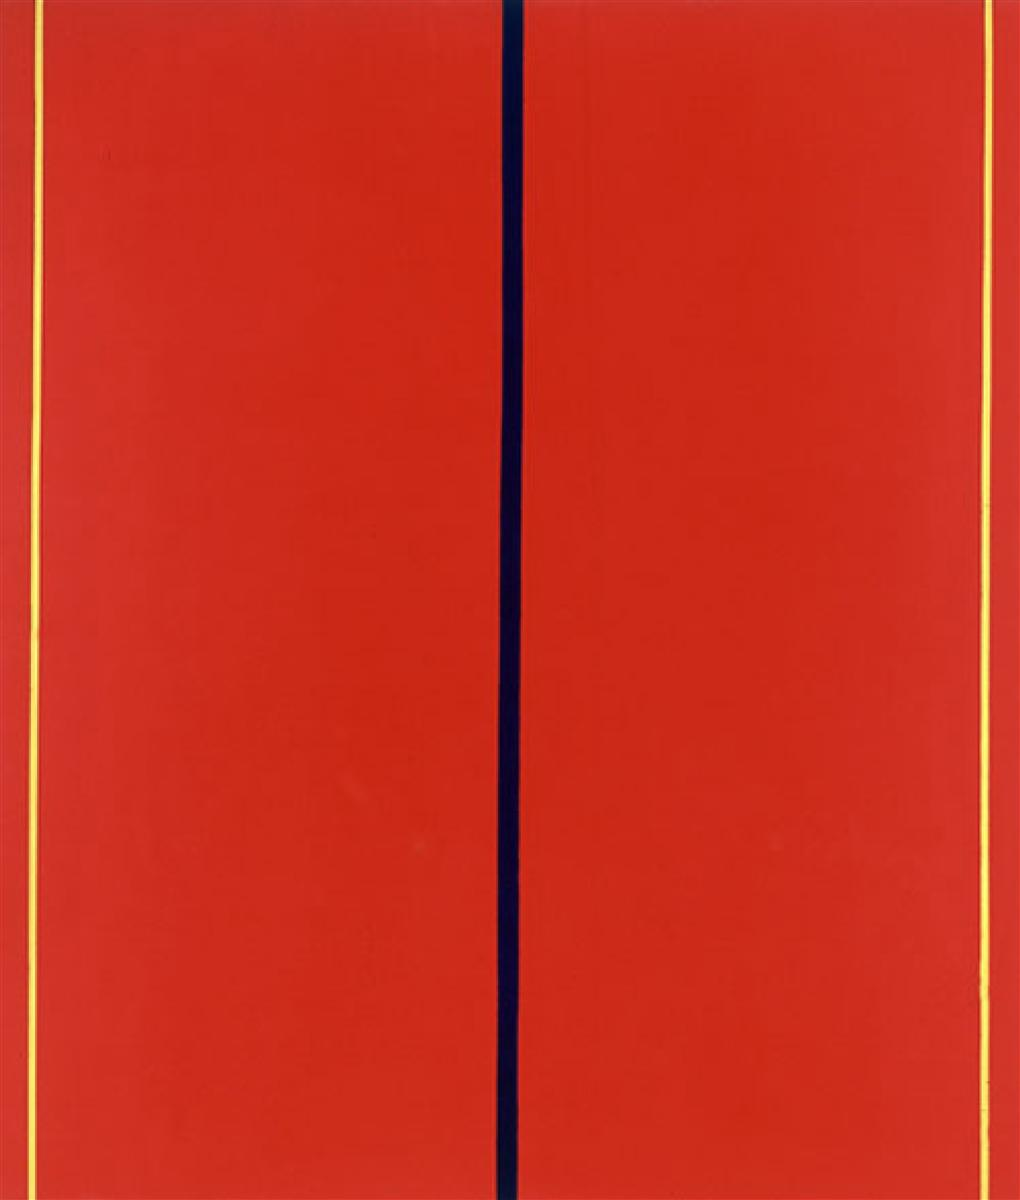 Barnett Newman, Who's Afraid of Red, Yellow and Blue II, 1967. Collection of the  Staatsgalerie Stuttgart.